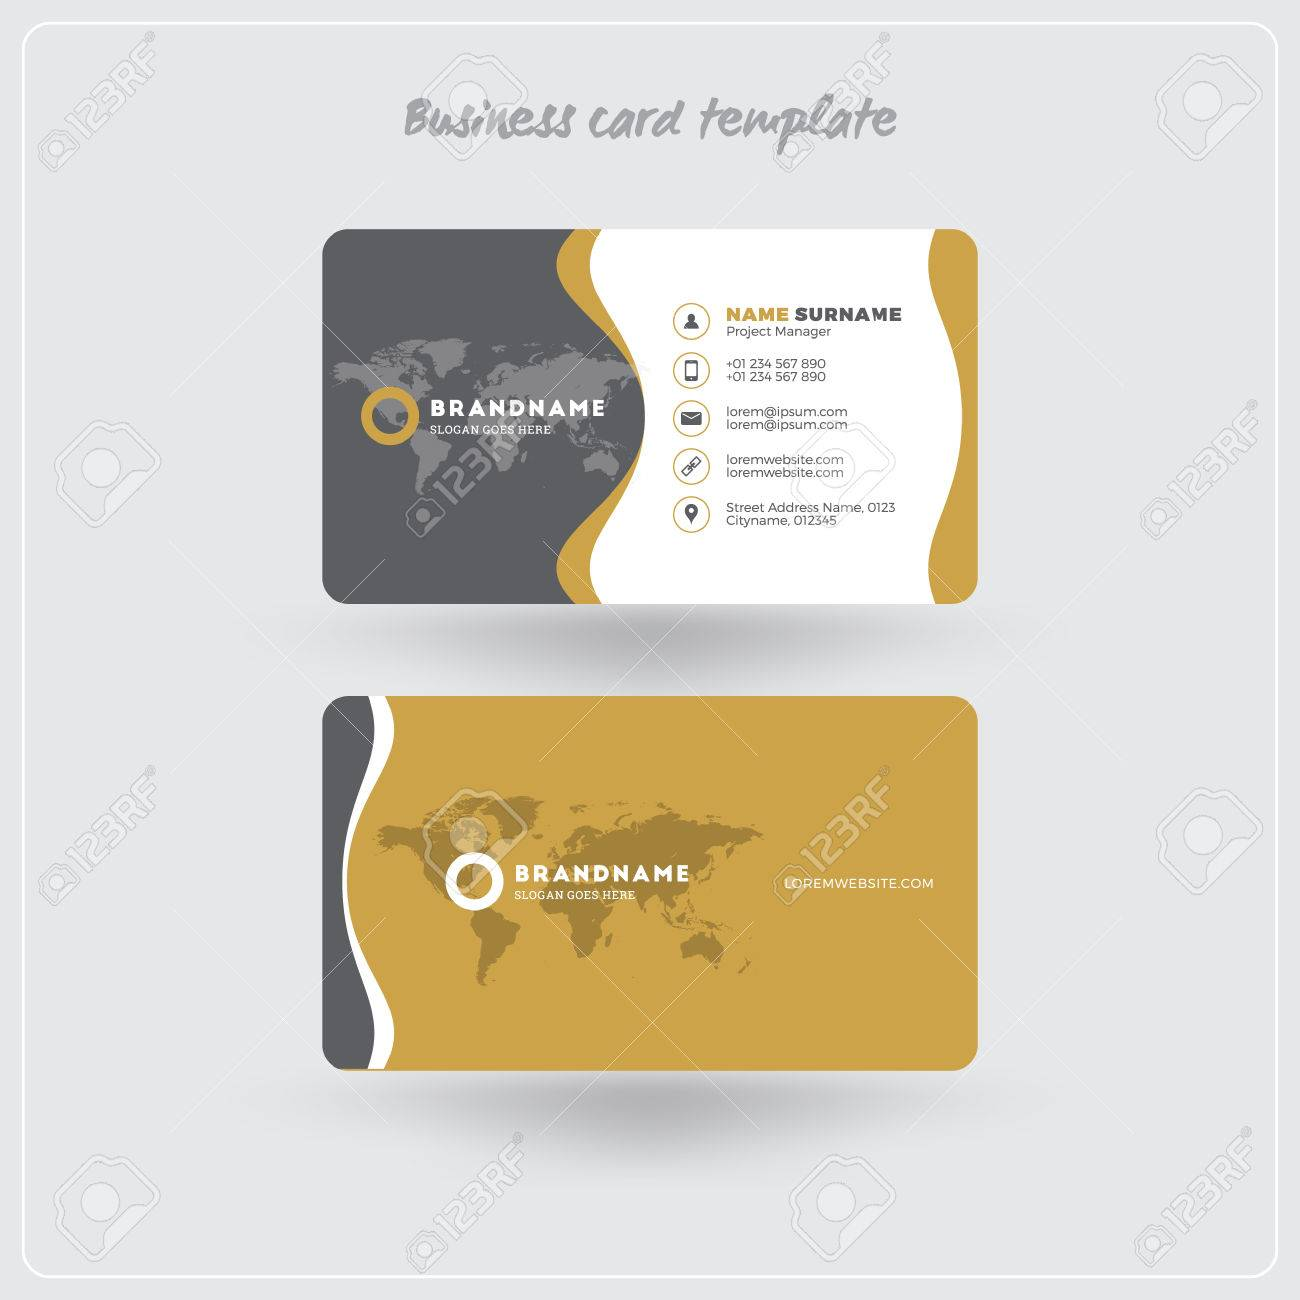 Golden and gray business card print template personal visiting golden and gray business card print template personal visiting card with company logo clean accmission Image collections